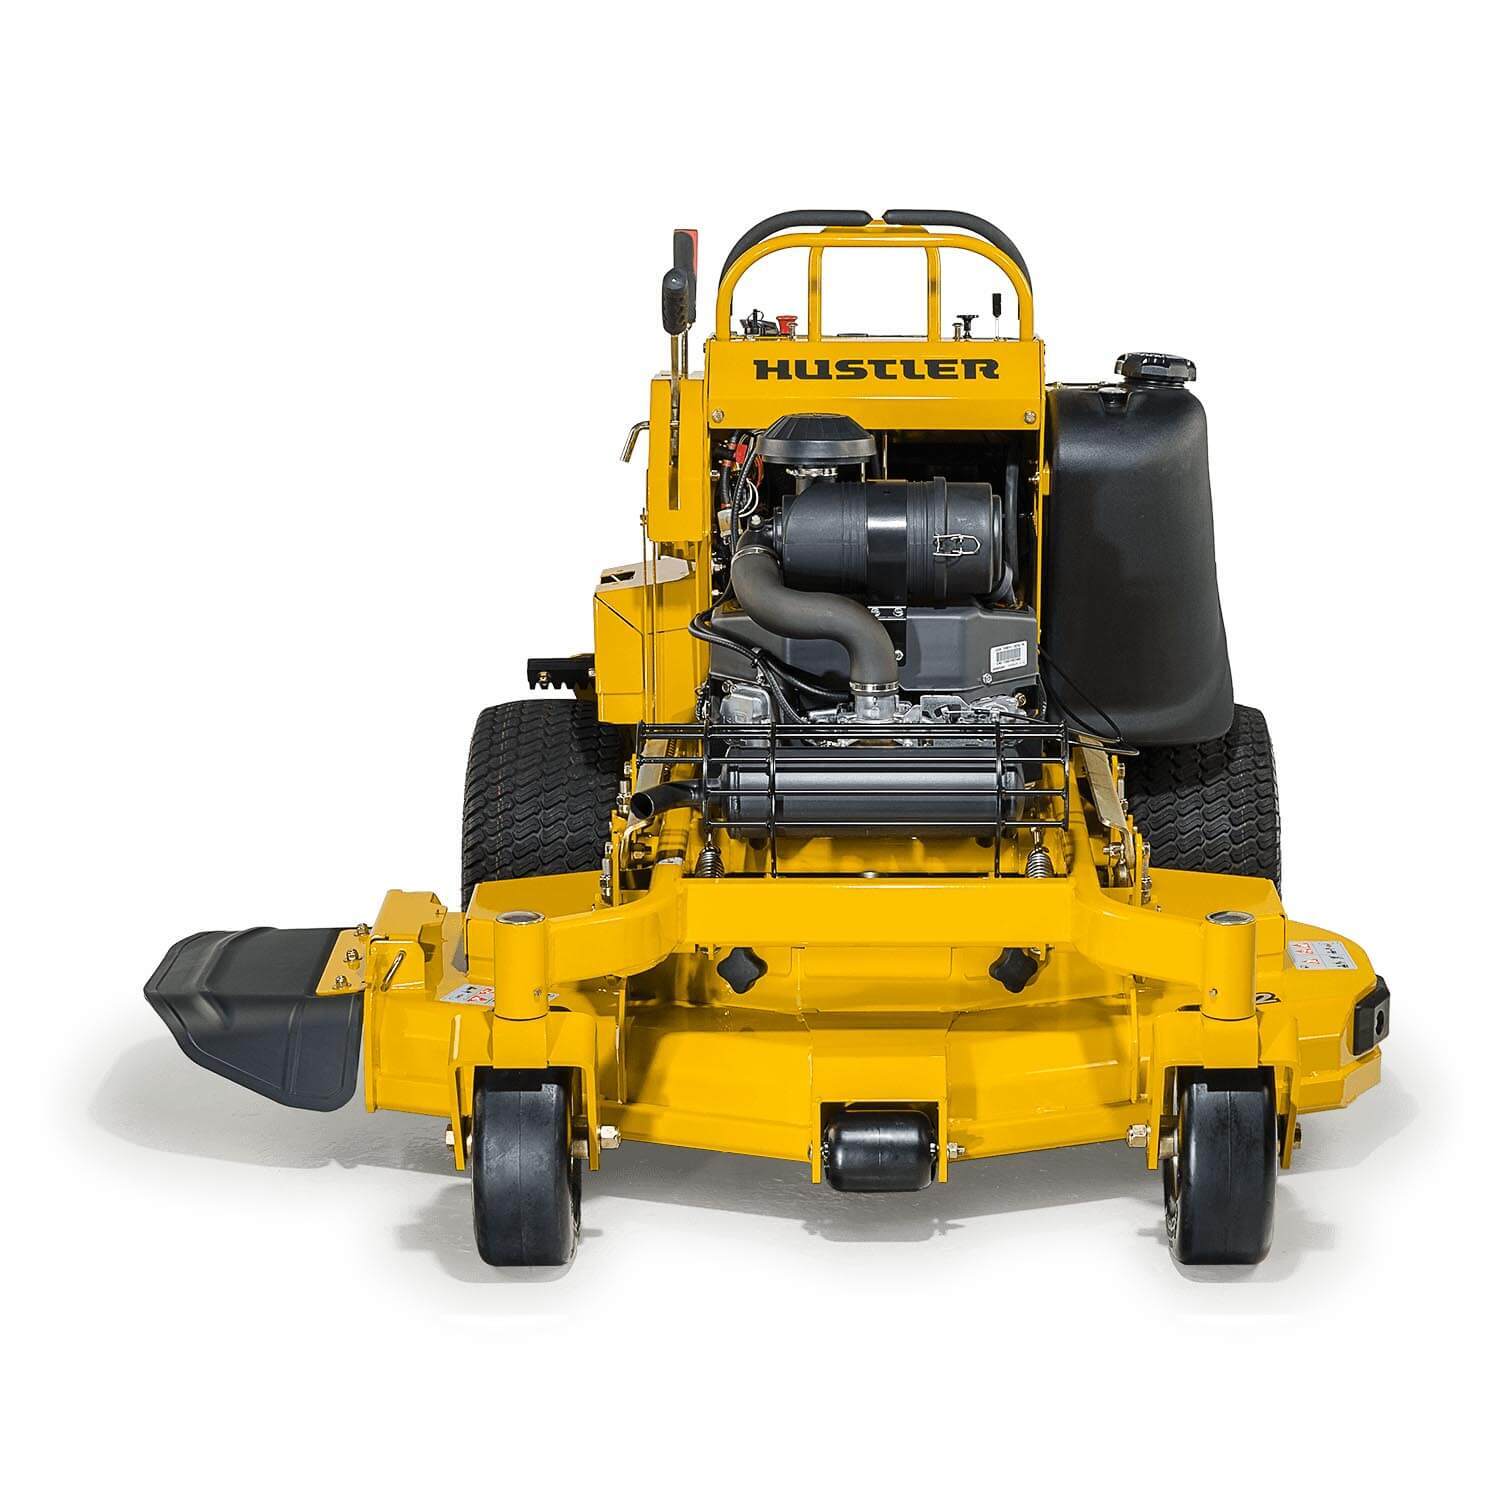 Image of the front of a yellow stand-on mower